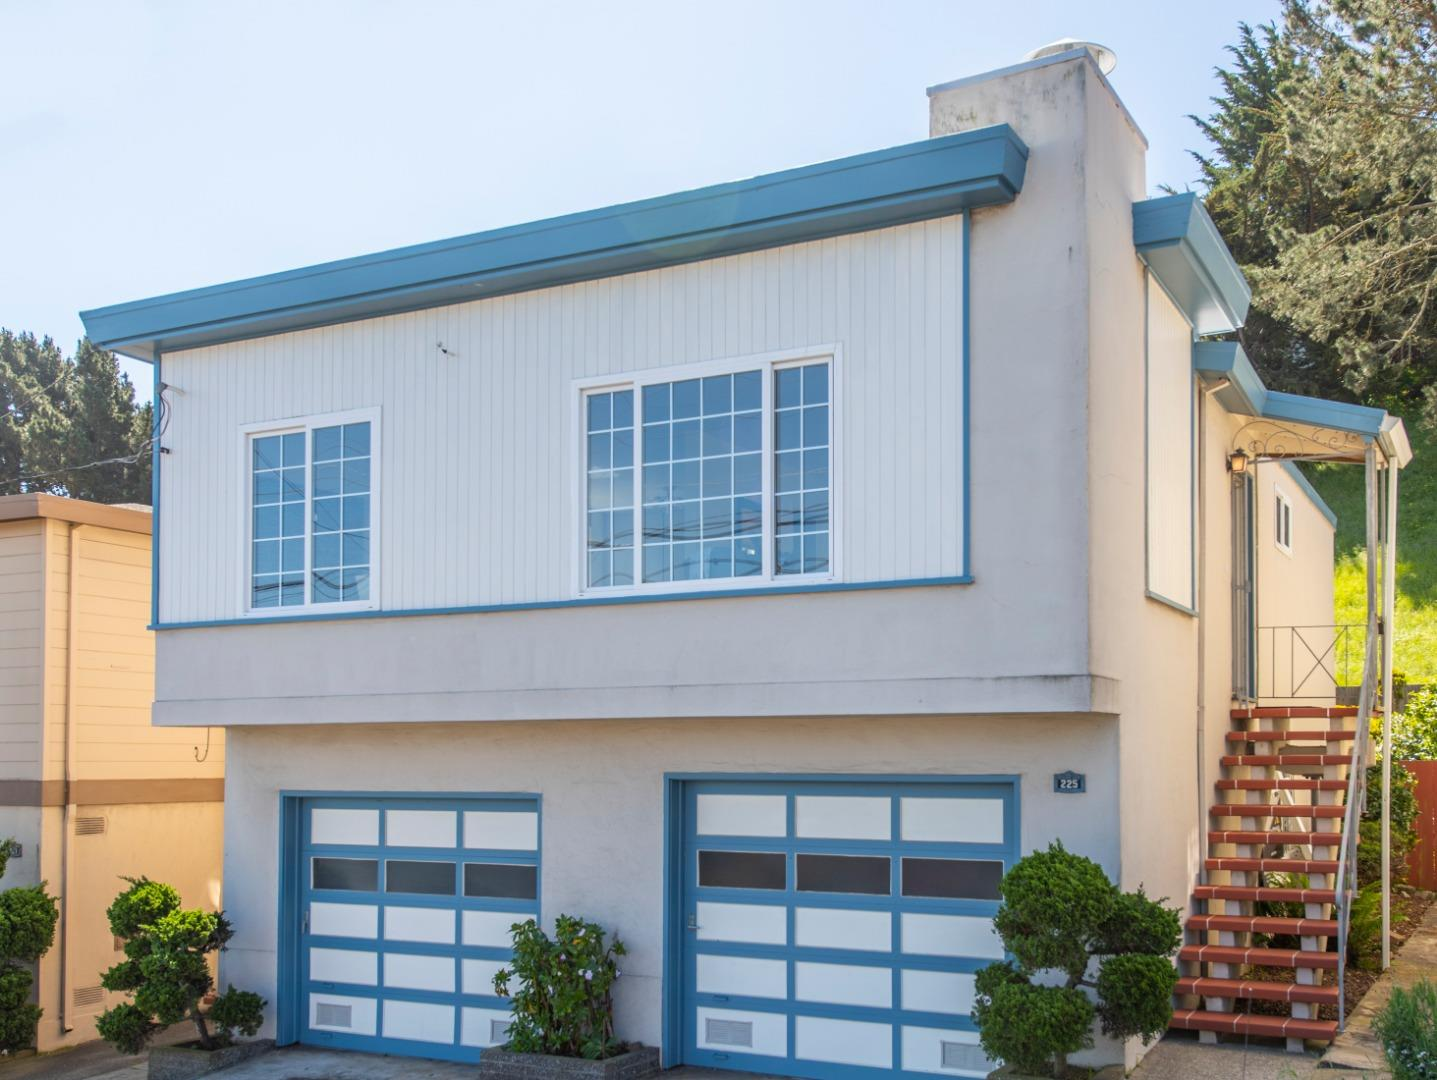 Image for 225 Baltimore Way, <br>Daly City 94014